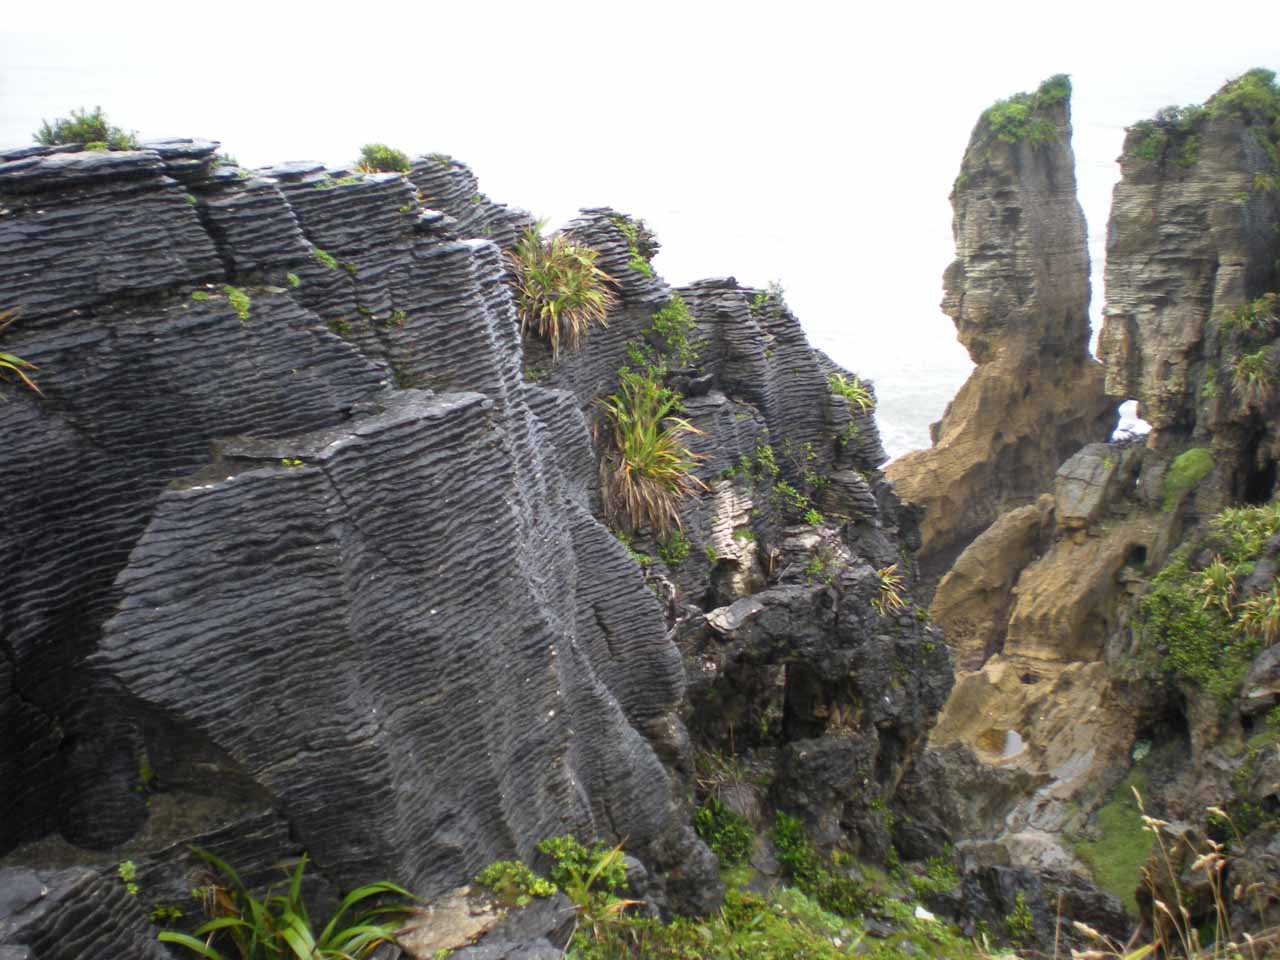 On the drive north from Greymouth through Westport and towards Hector and the Charming Creek Walkway, there was the eccentric Pancake Rocks at Punakaiki (88km south of Hector)